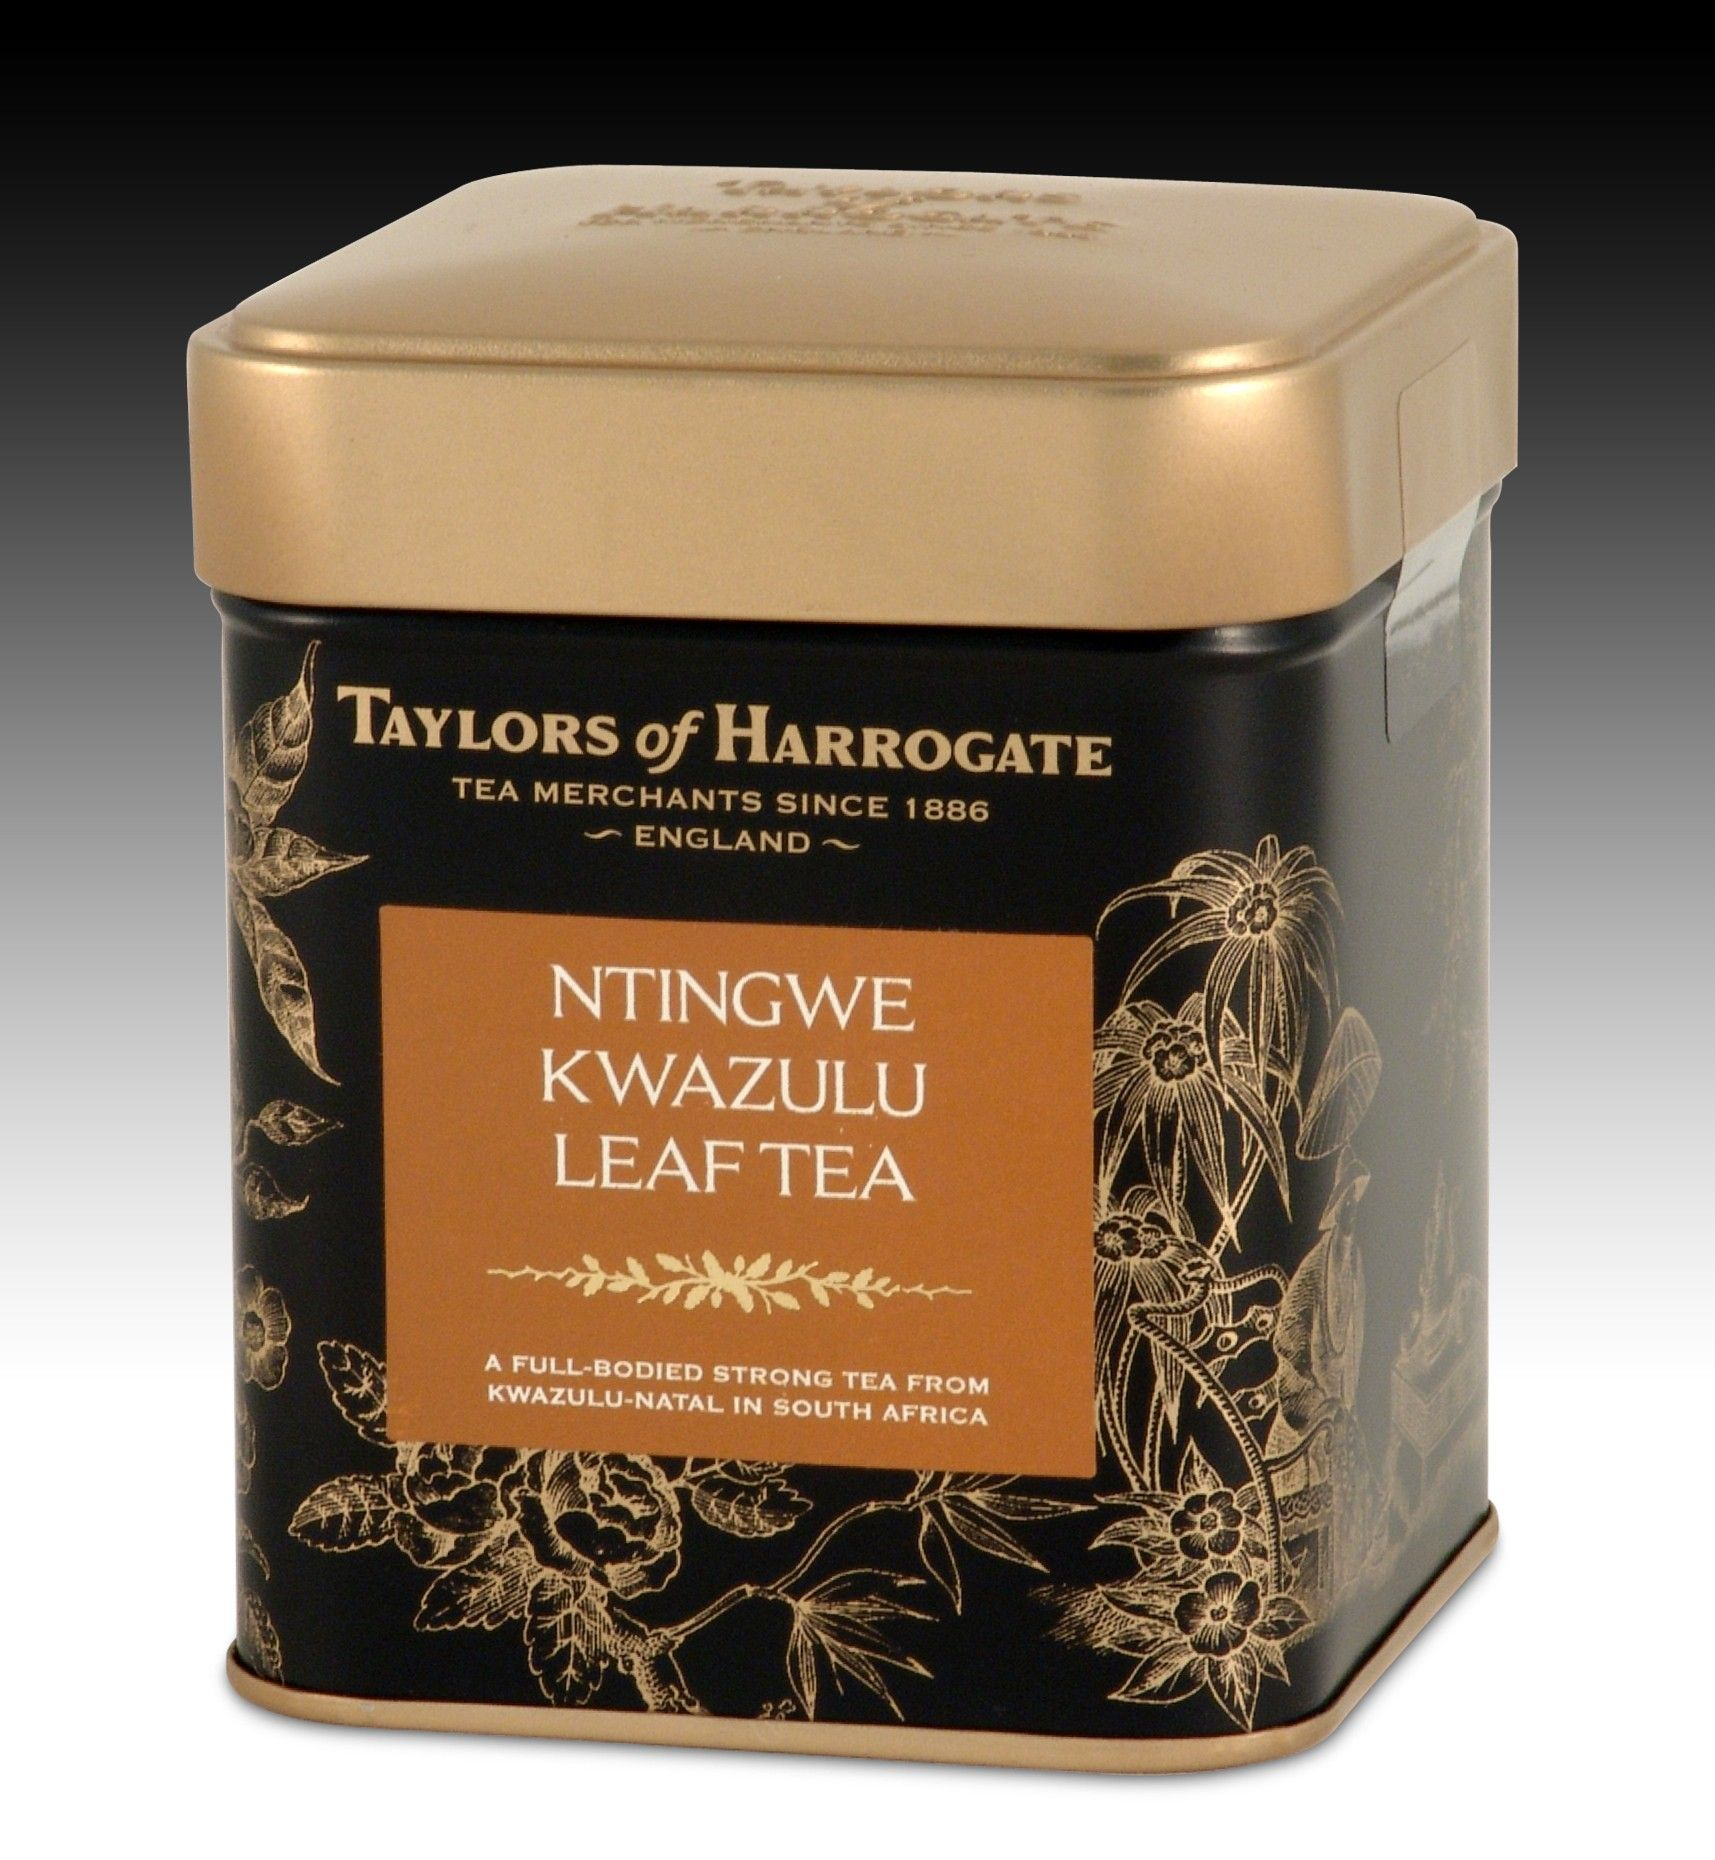 Taylors of Harrogate South African Ntingwe Kwazulu Loose Leaf Tea ...